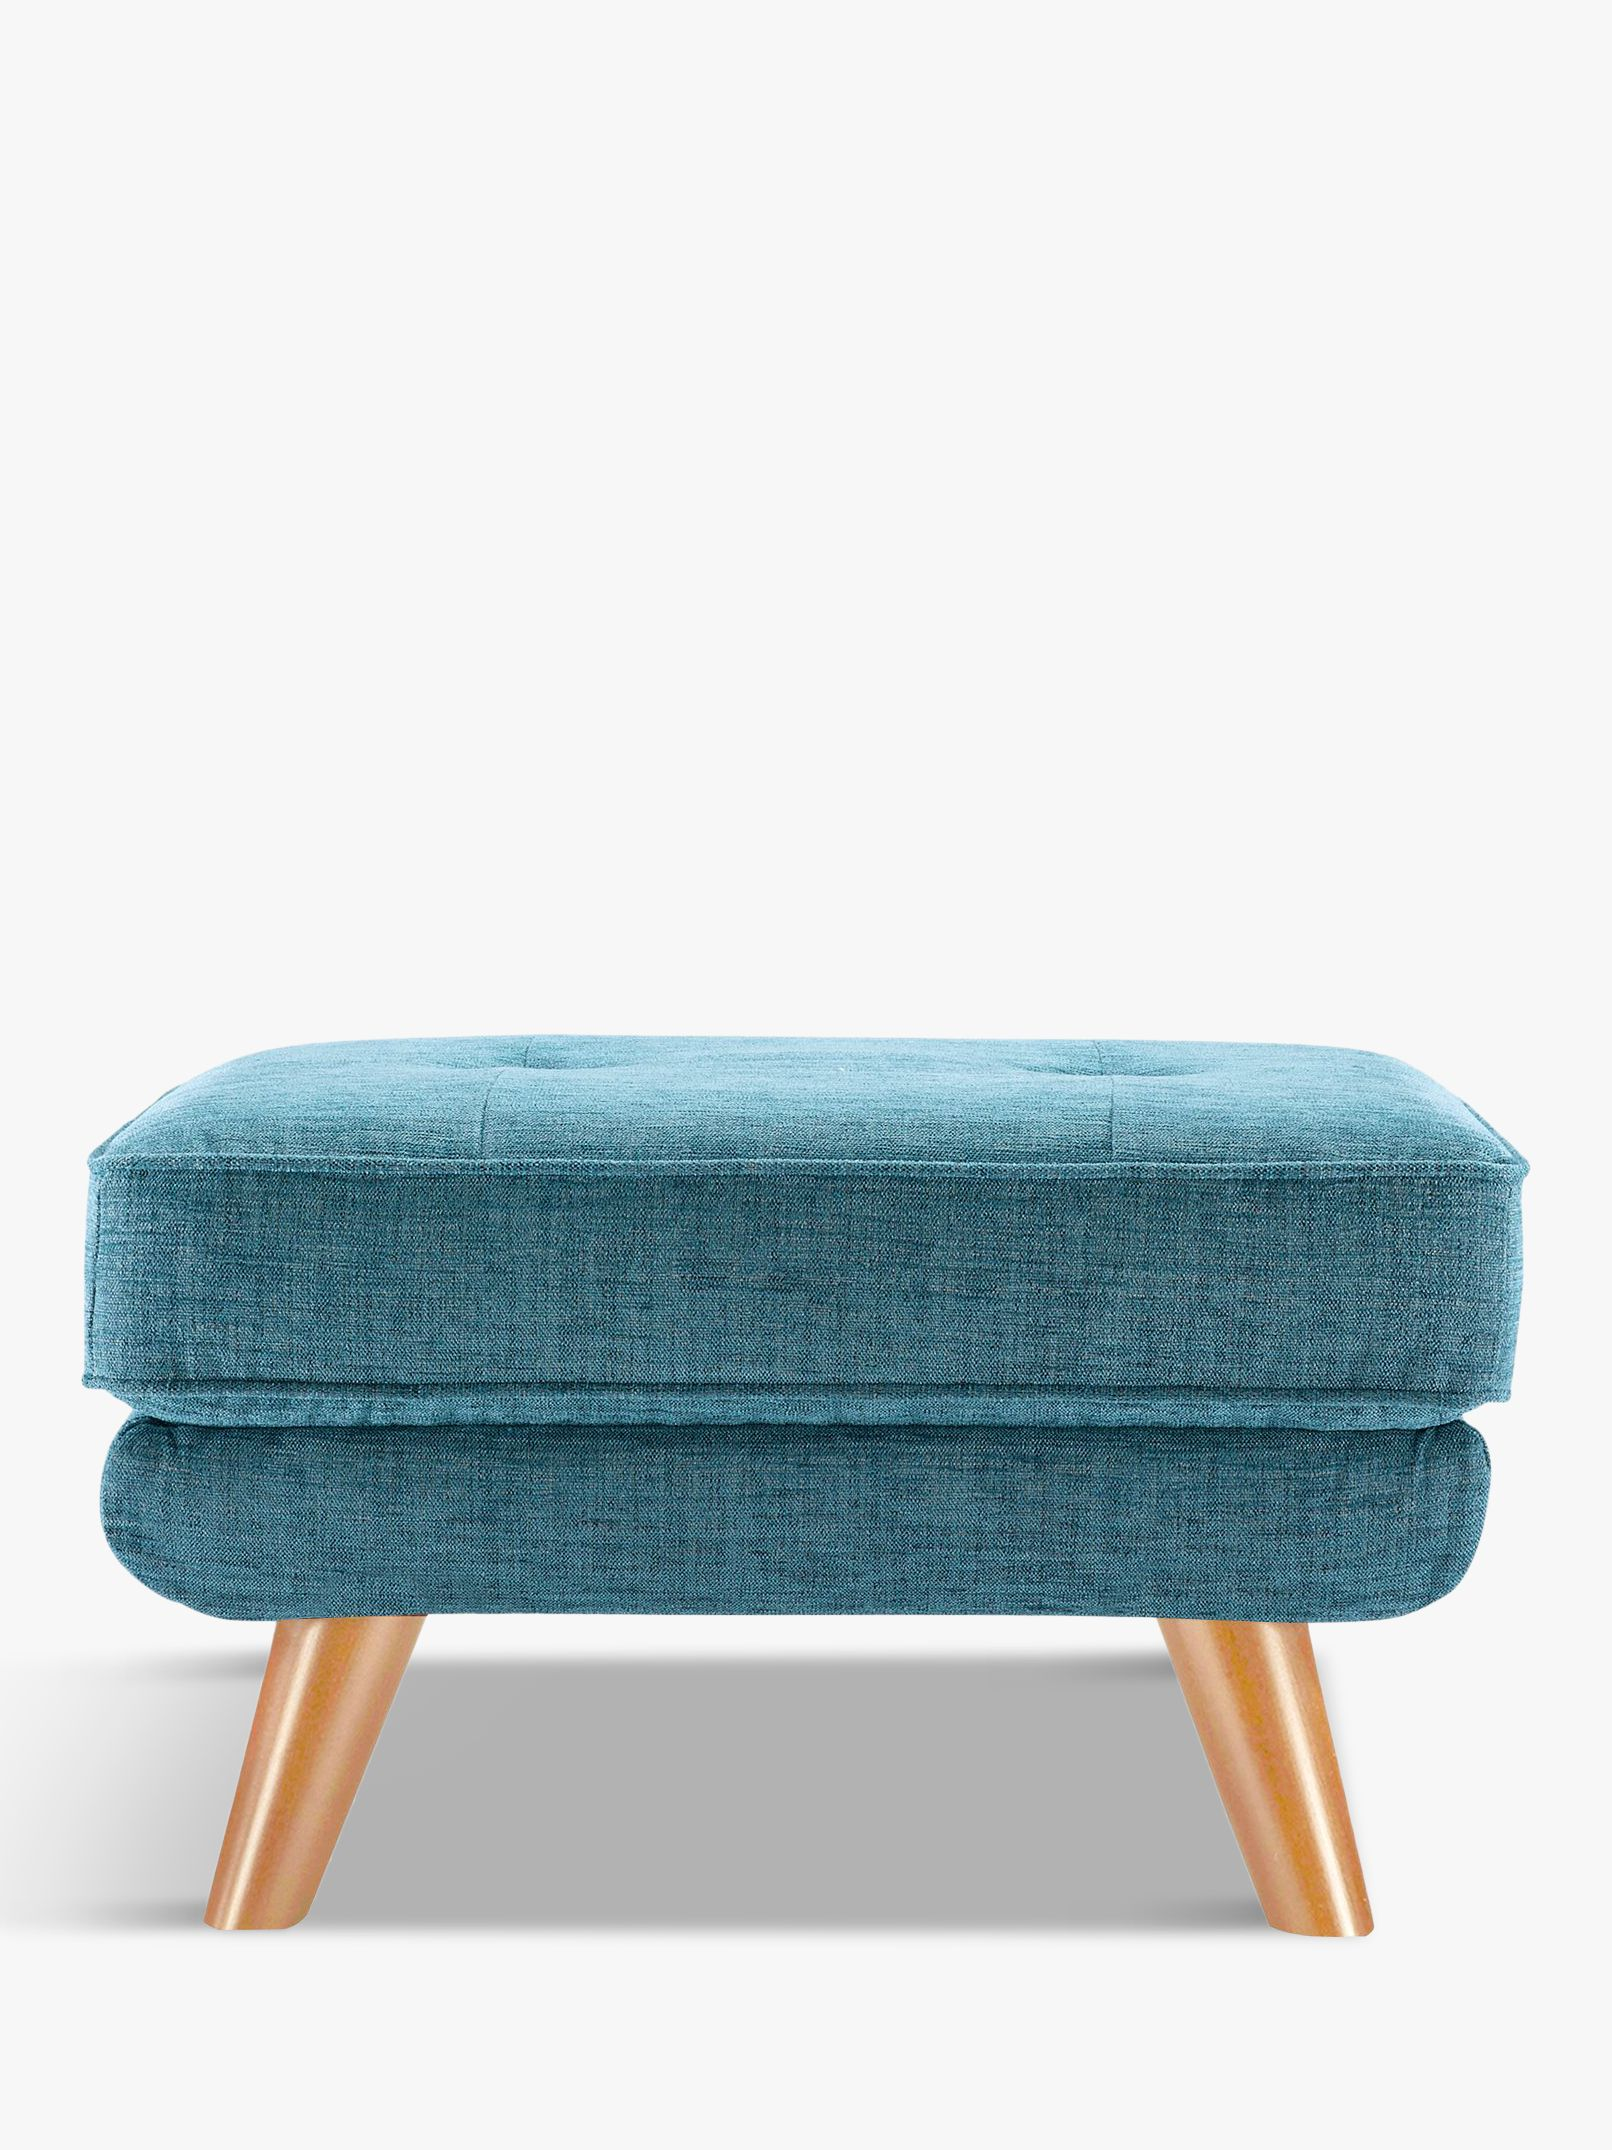 G Plan Vintage The Fifty Three Footstool, Fleck Blue